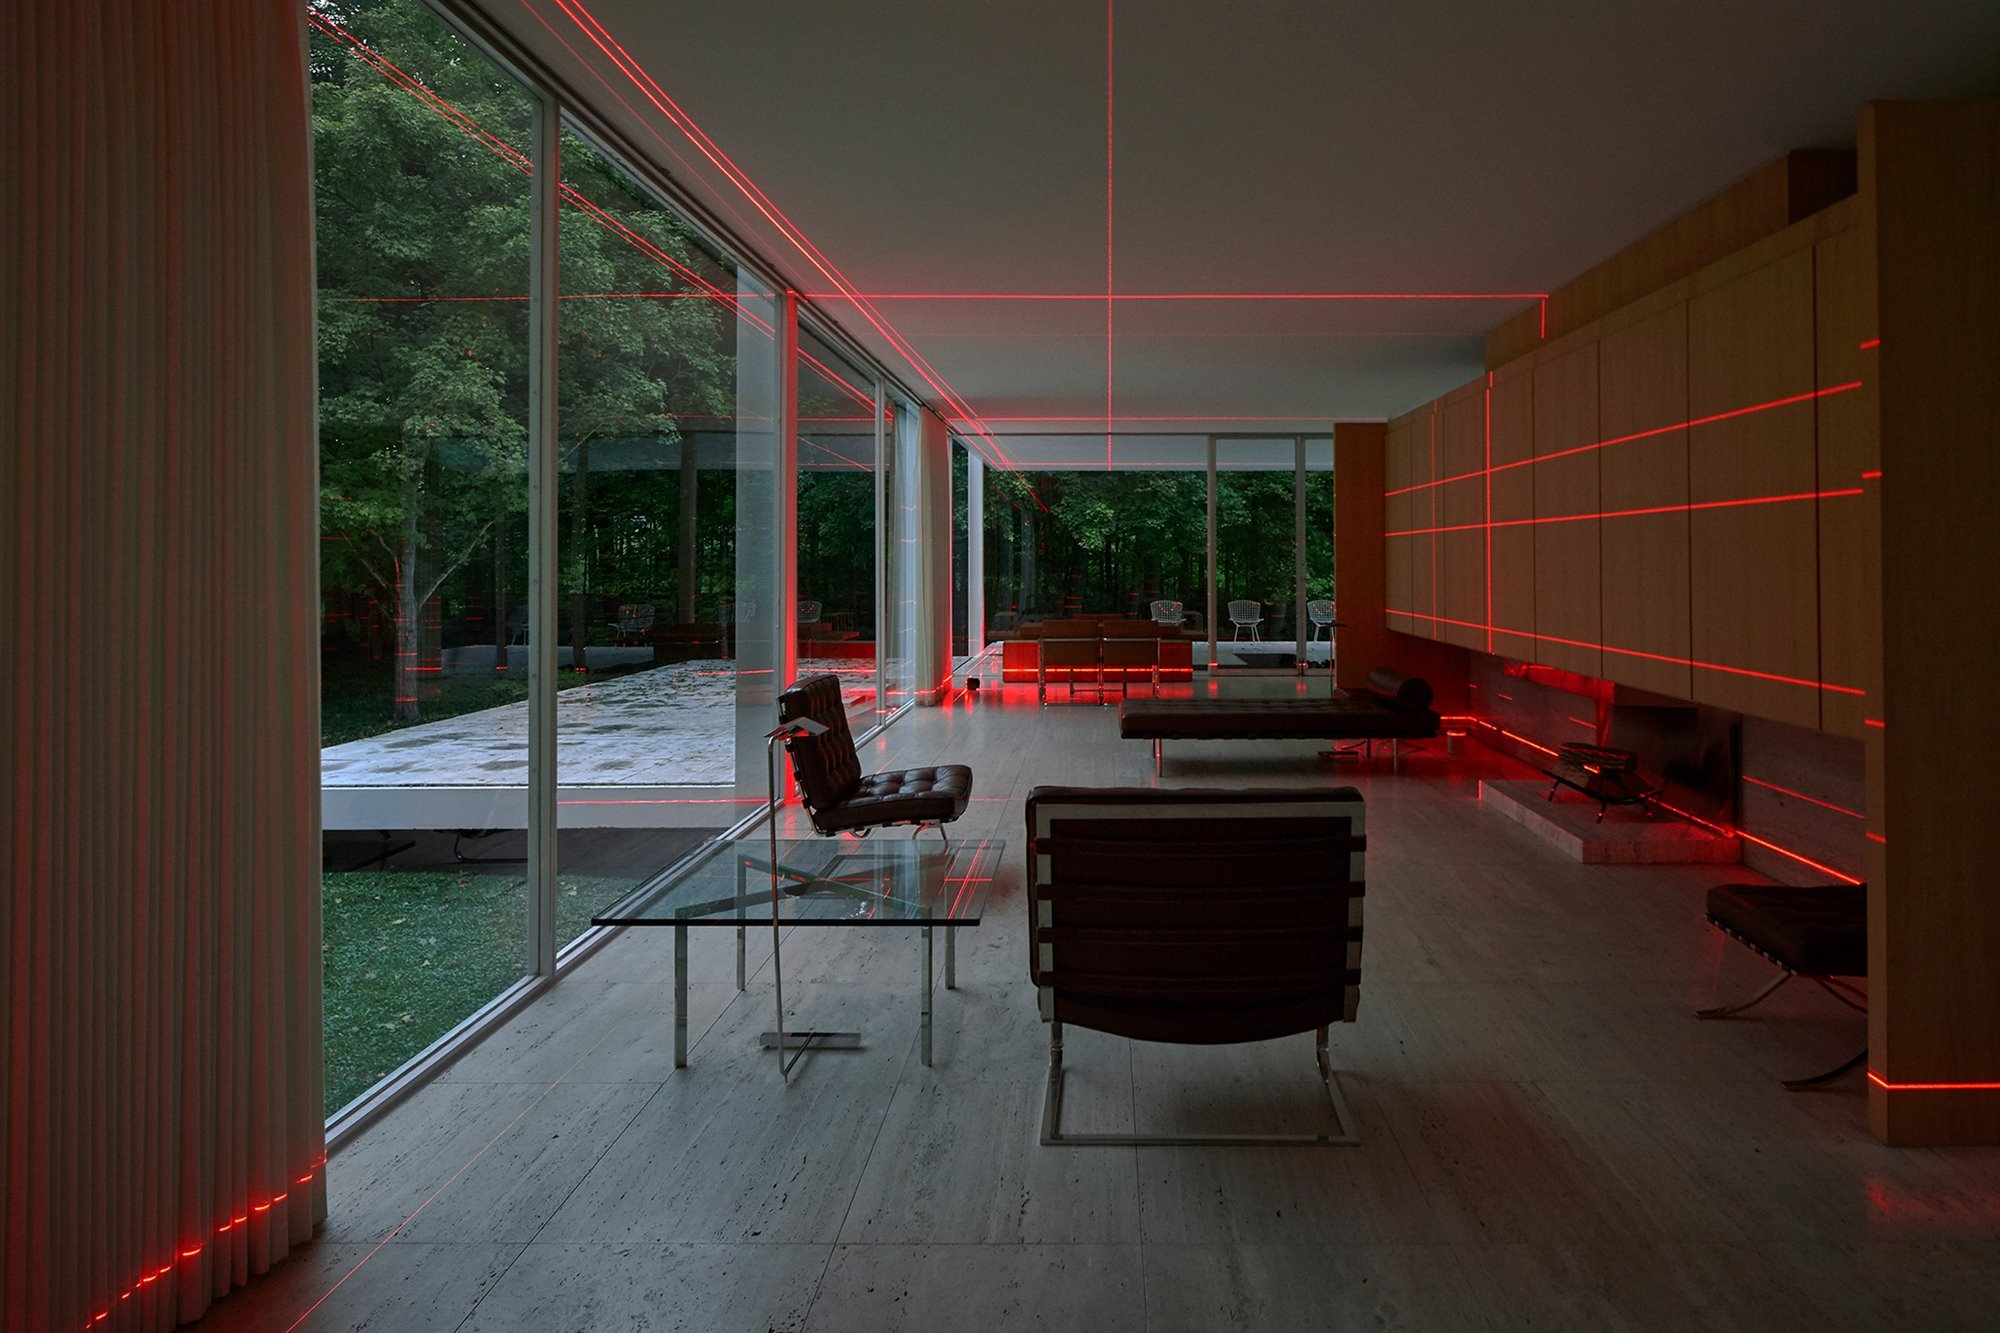 mies-van-der-rohe-farnsworth-salon